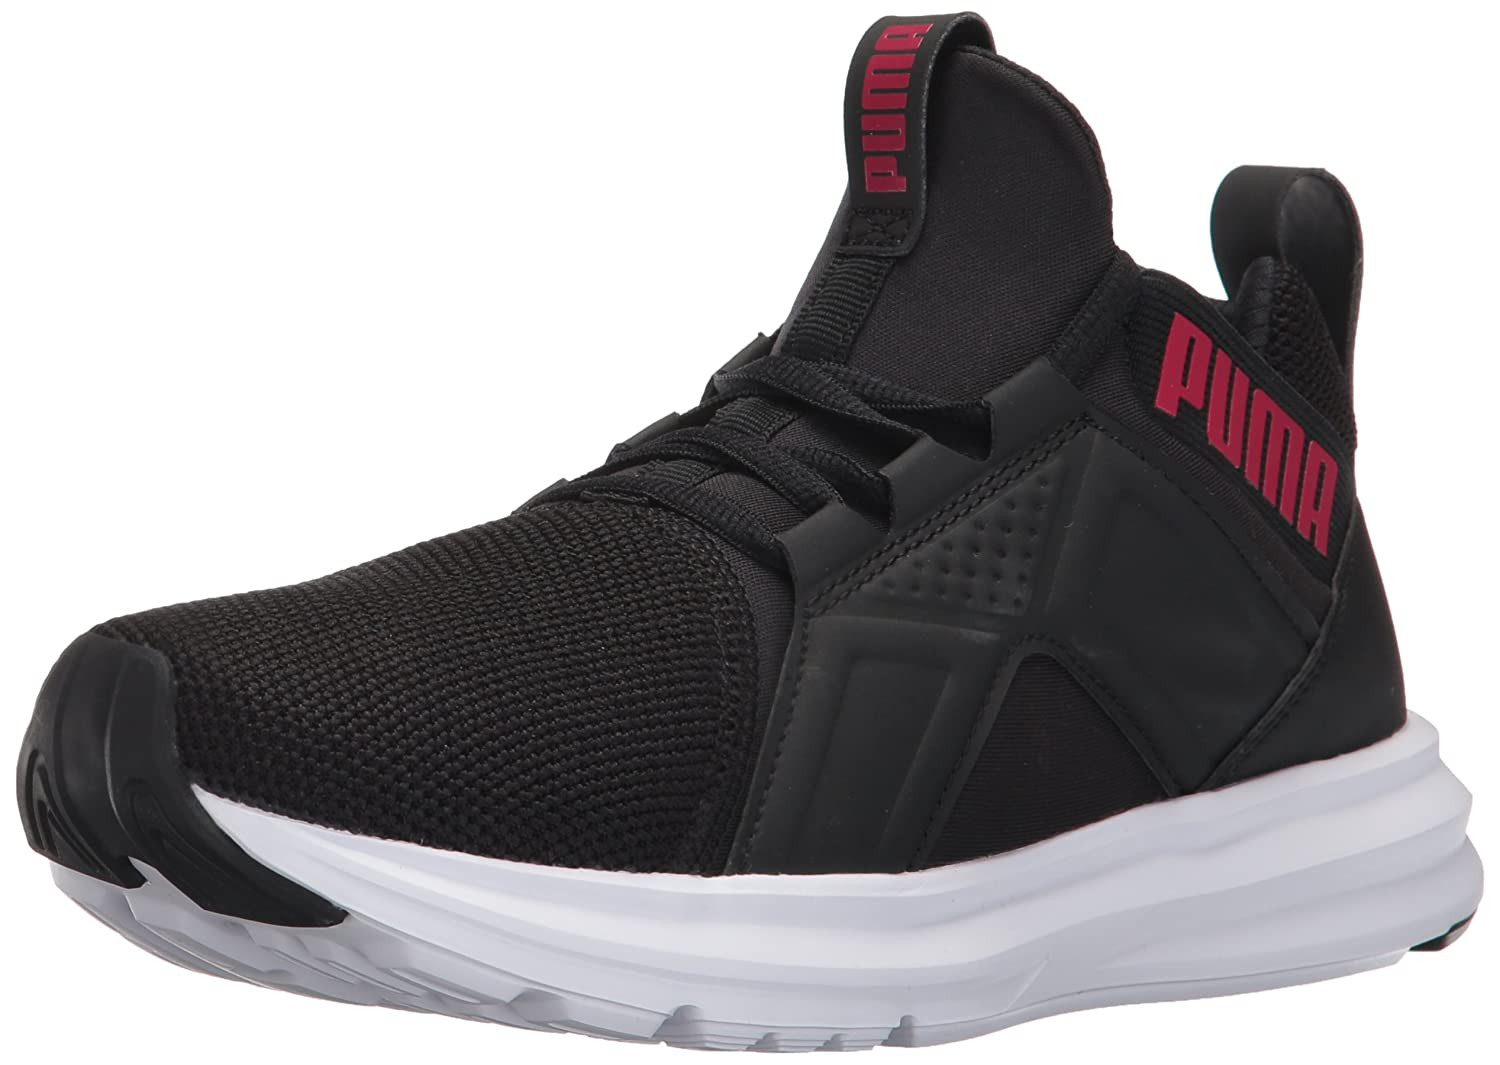 PUMA Women's Enzo Mesh Wn Sneaker B01N9I4FC1 7.5 M US|Puma Black-love Potion